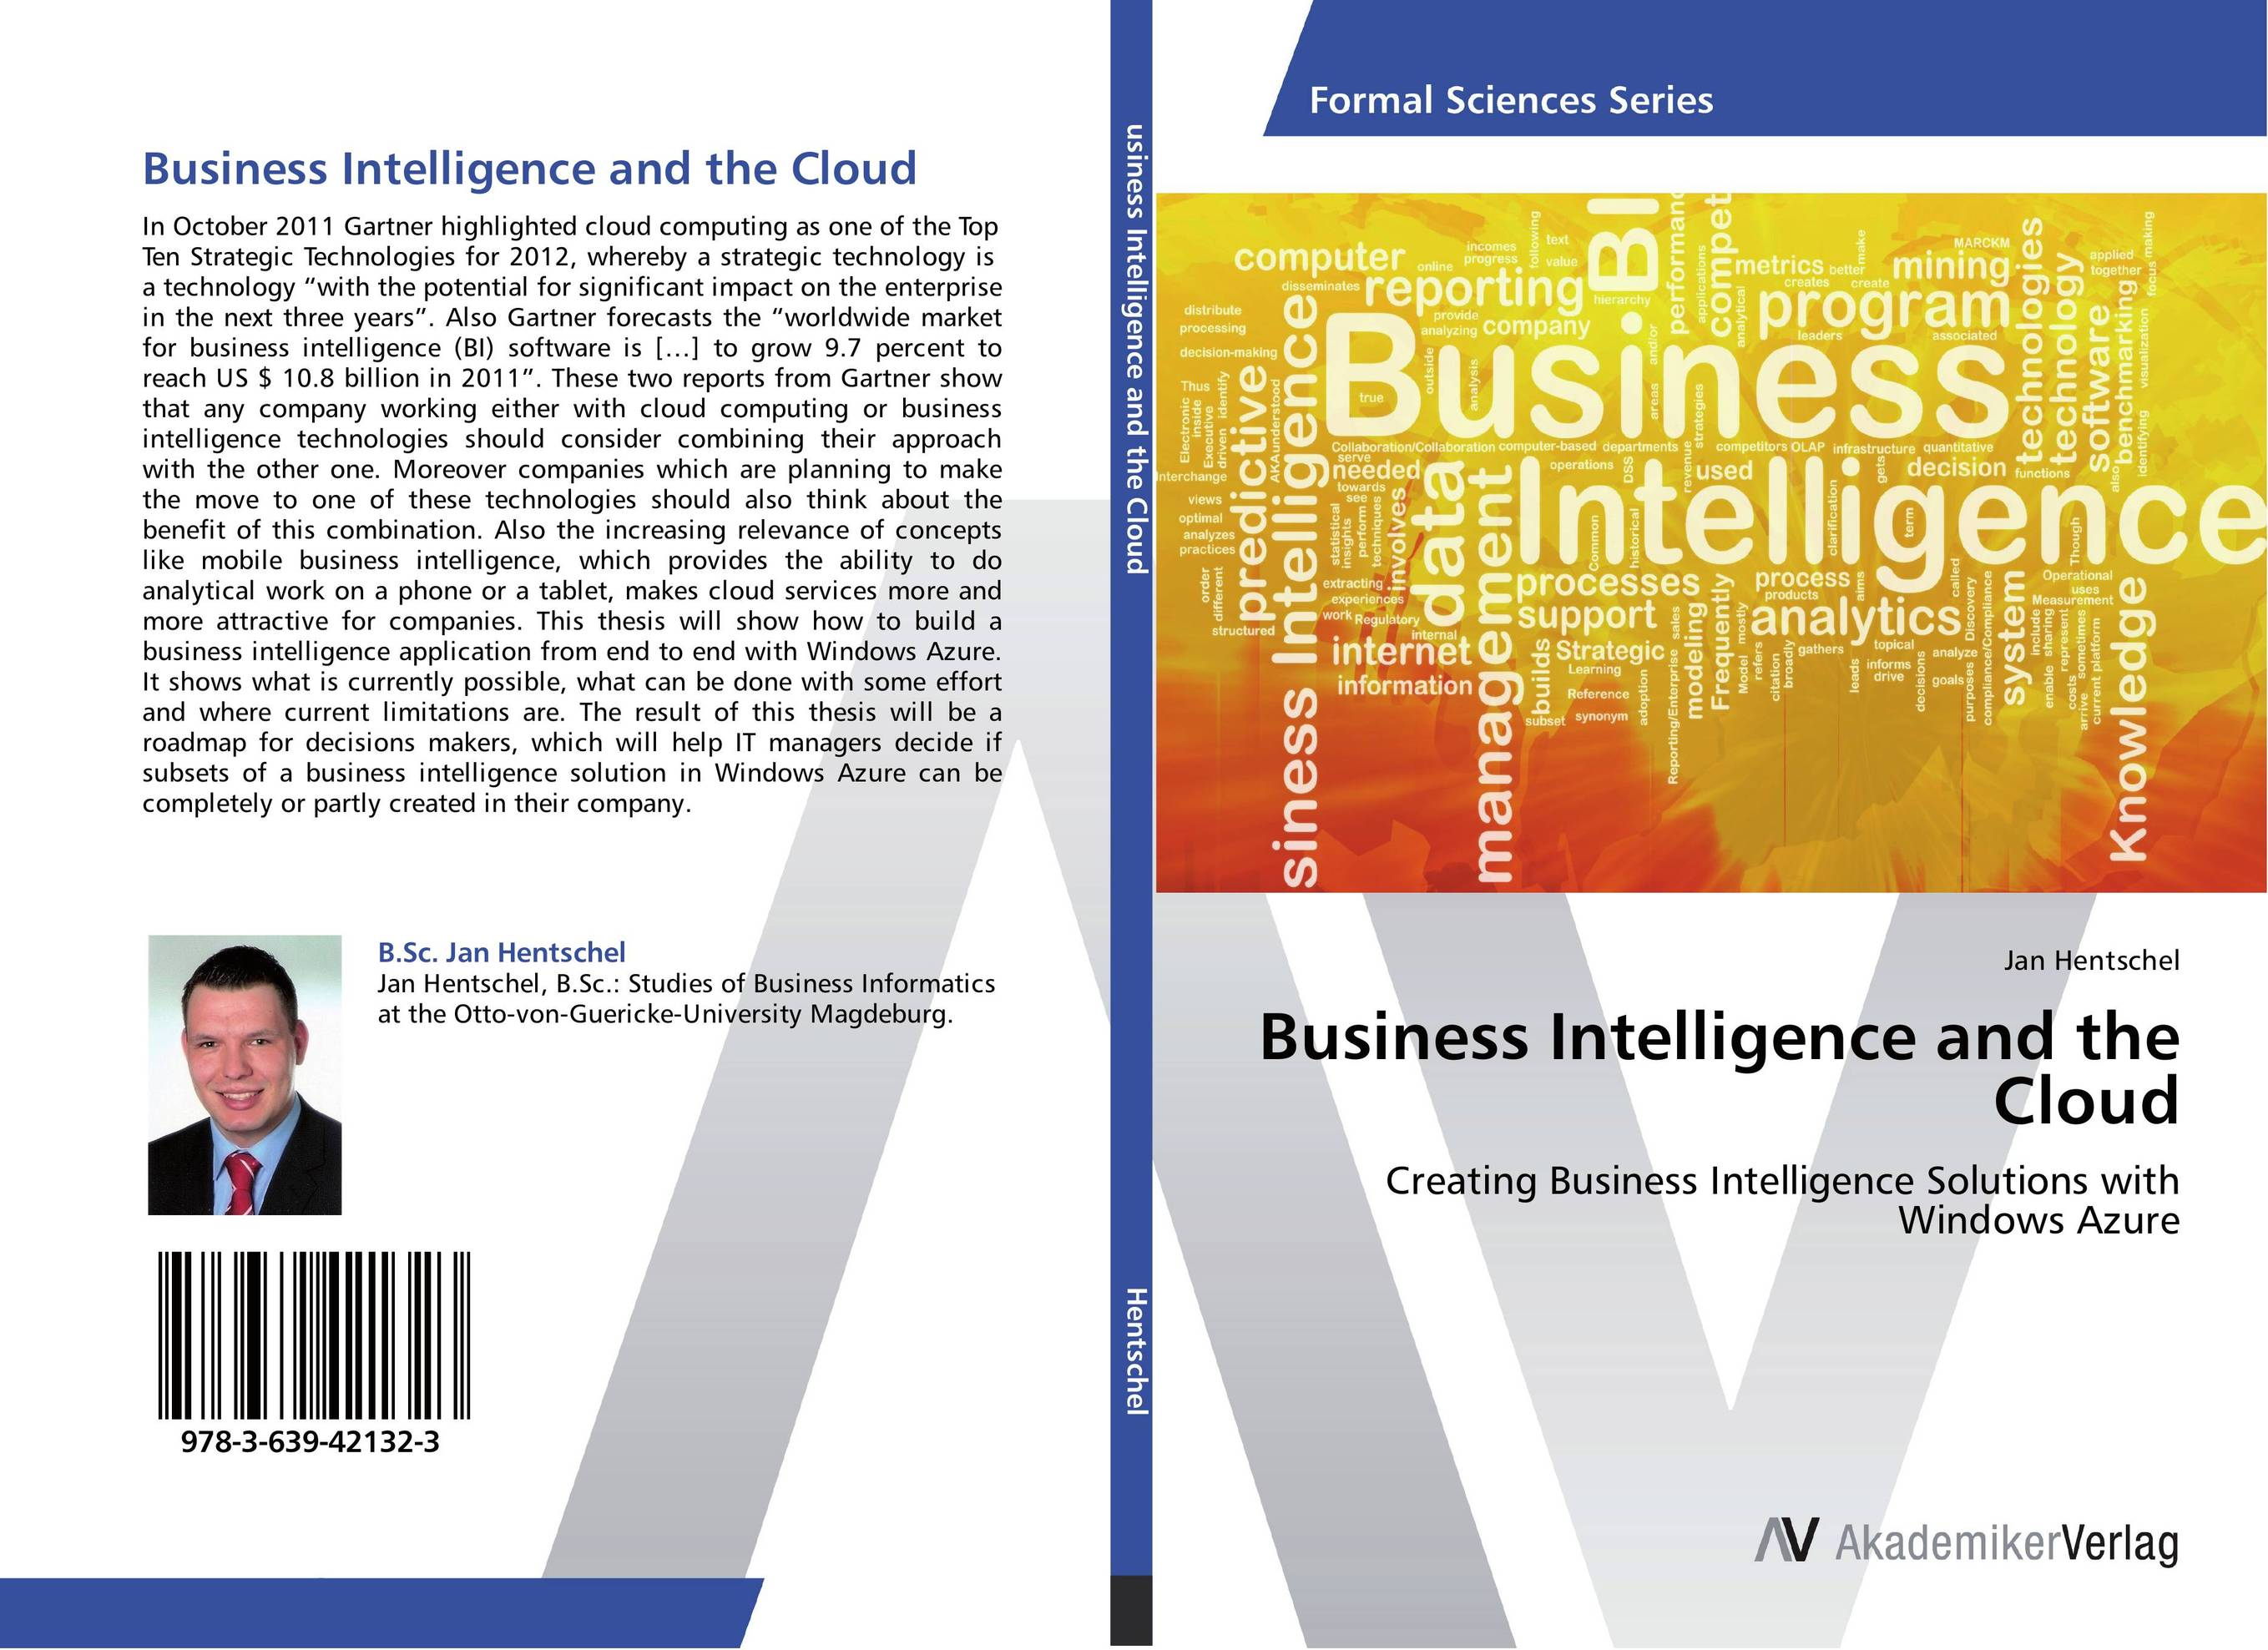 Business Intelligence and the Cloud boscam 5 8ghz cloud spirit antennas txa and rxa a pair in one set multicolored